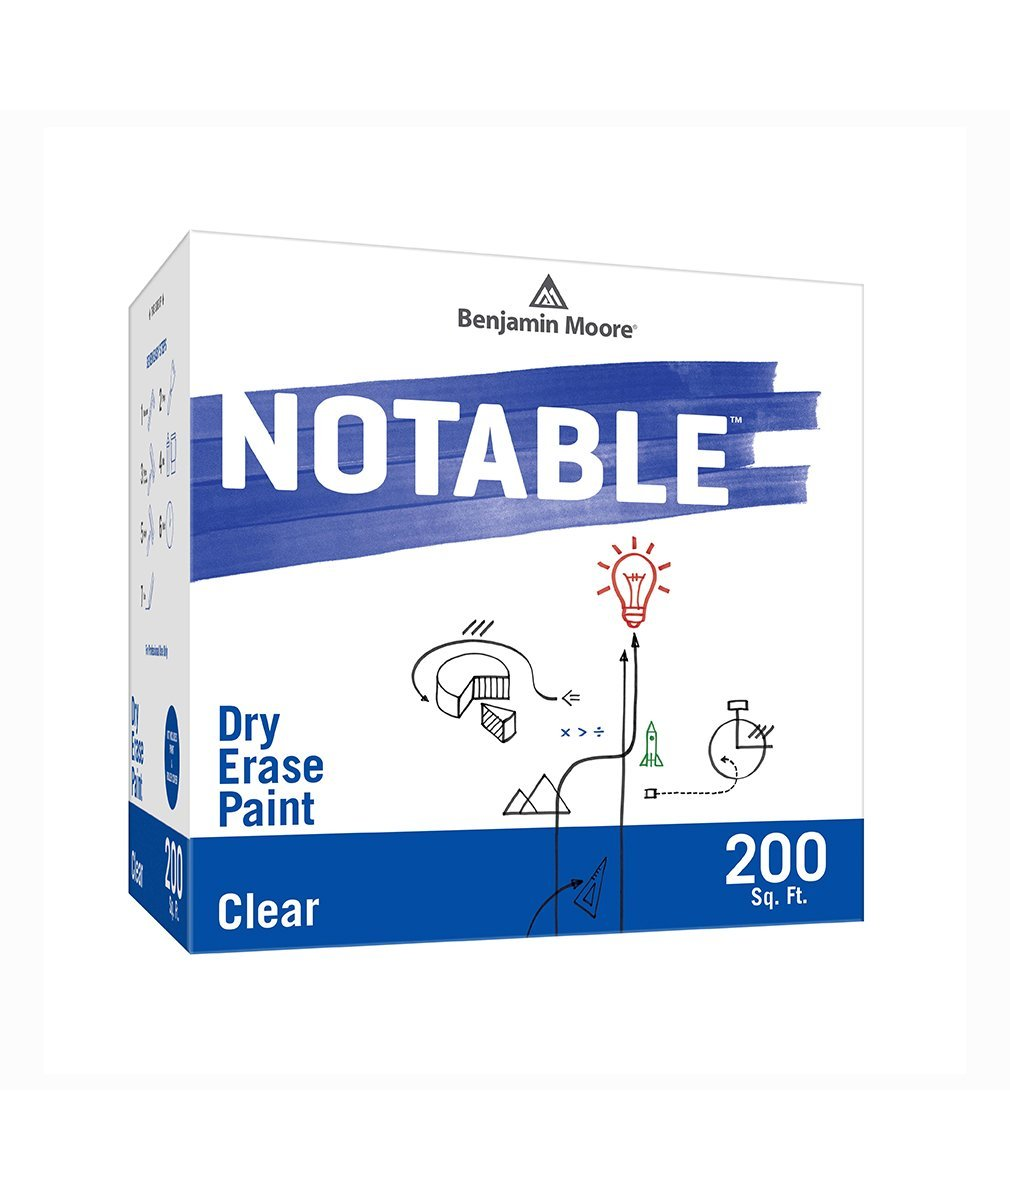 Benjamin Moore Notable Dry Erase Paint in Clear 200 sq. ft, available at Creative Paint in San Francisco, South Bay & East Bay.